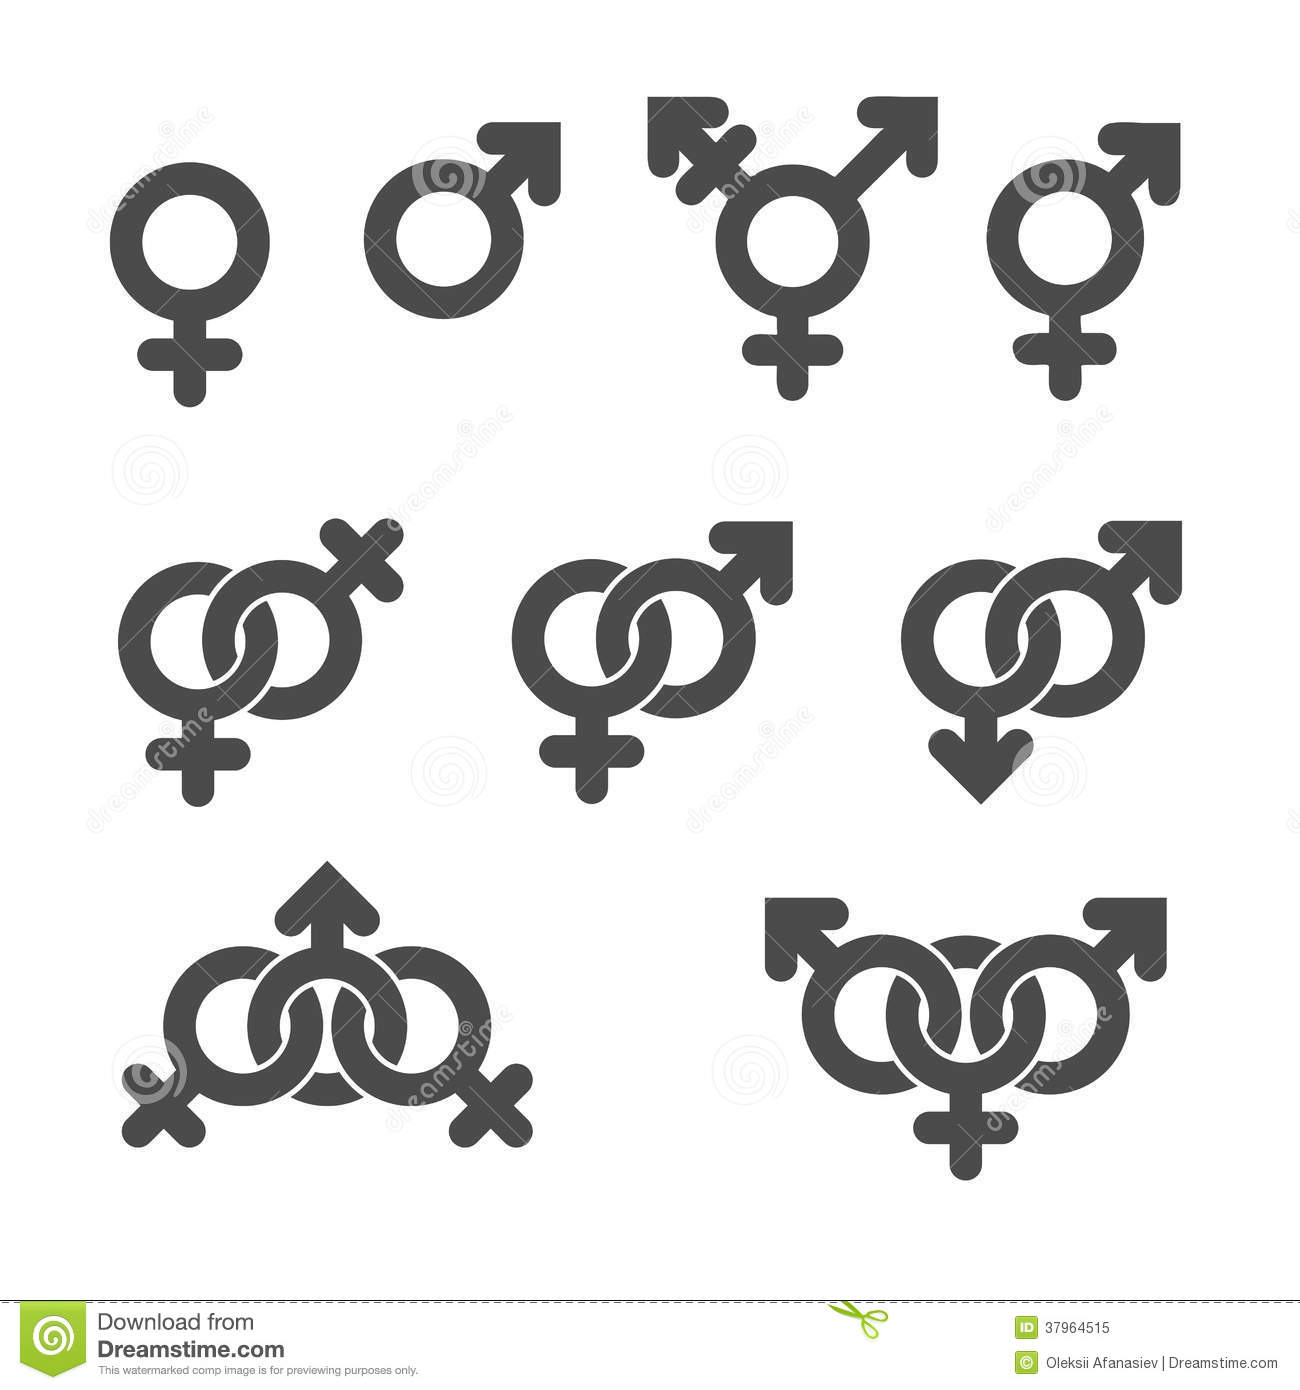 gender symbol stock illustrations 35 223 gender symbol stock illustrations vectors clipart dreamstime dreamstime com